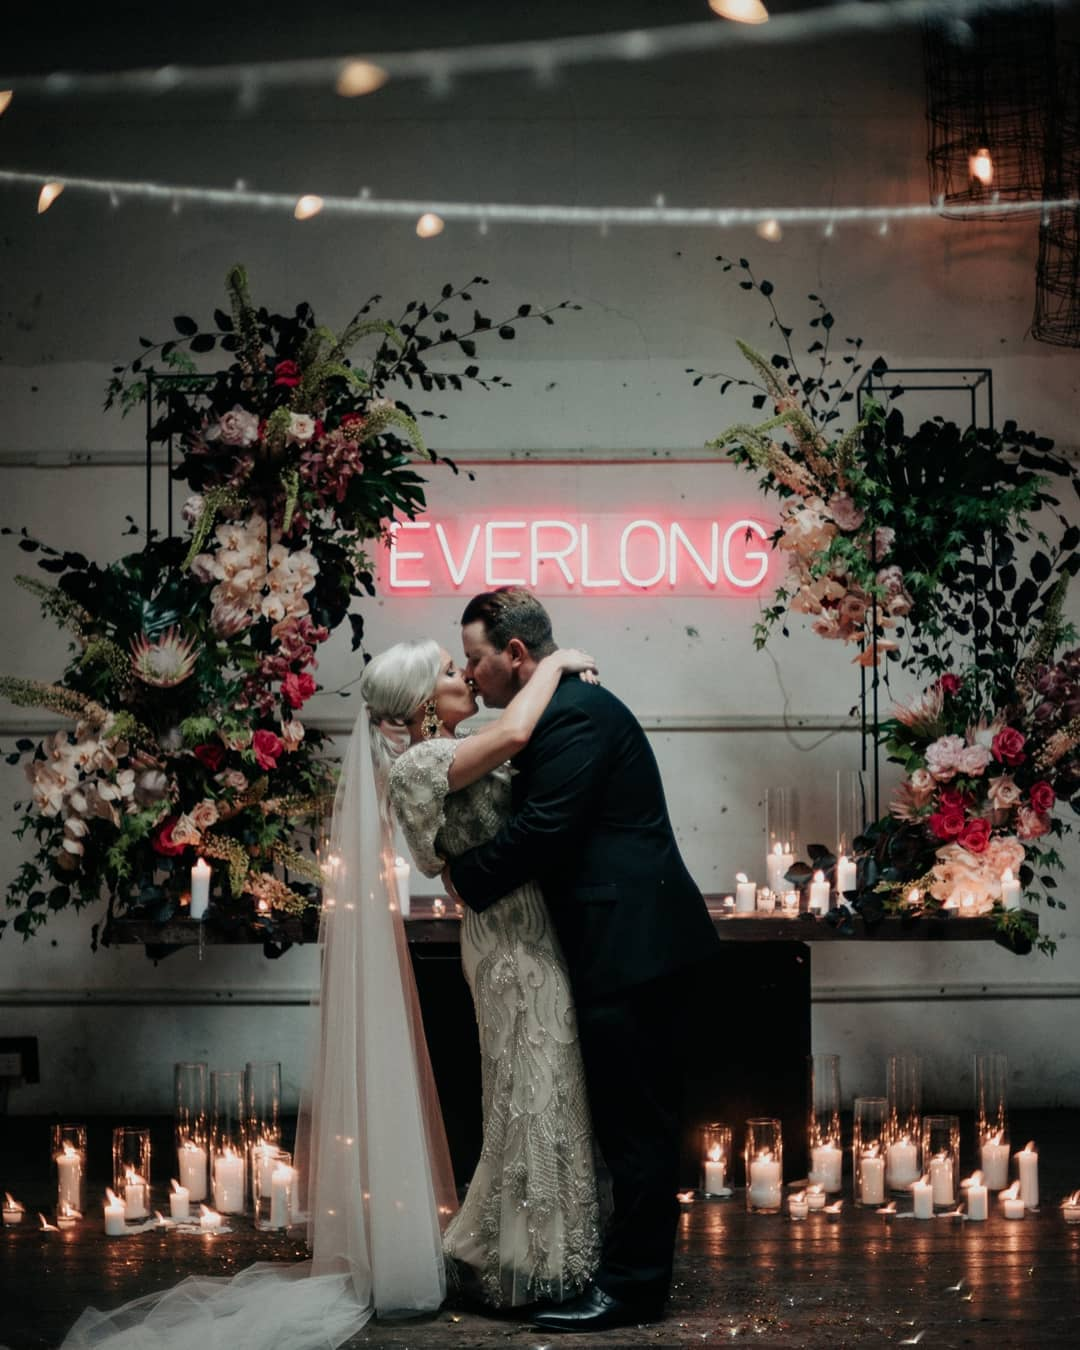 Everlong Wedding Ceremony Neon Sign by Neon Republic | Photography: Andrew Hardy